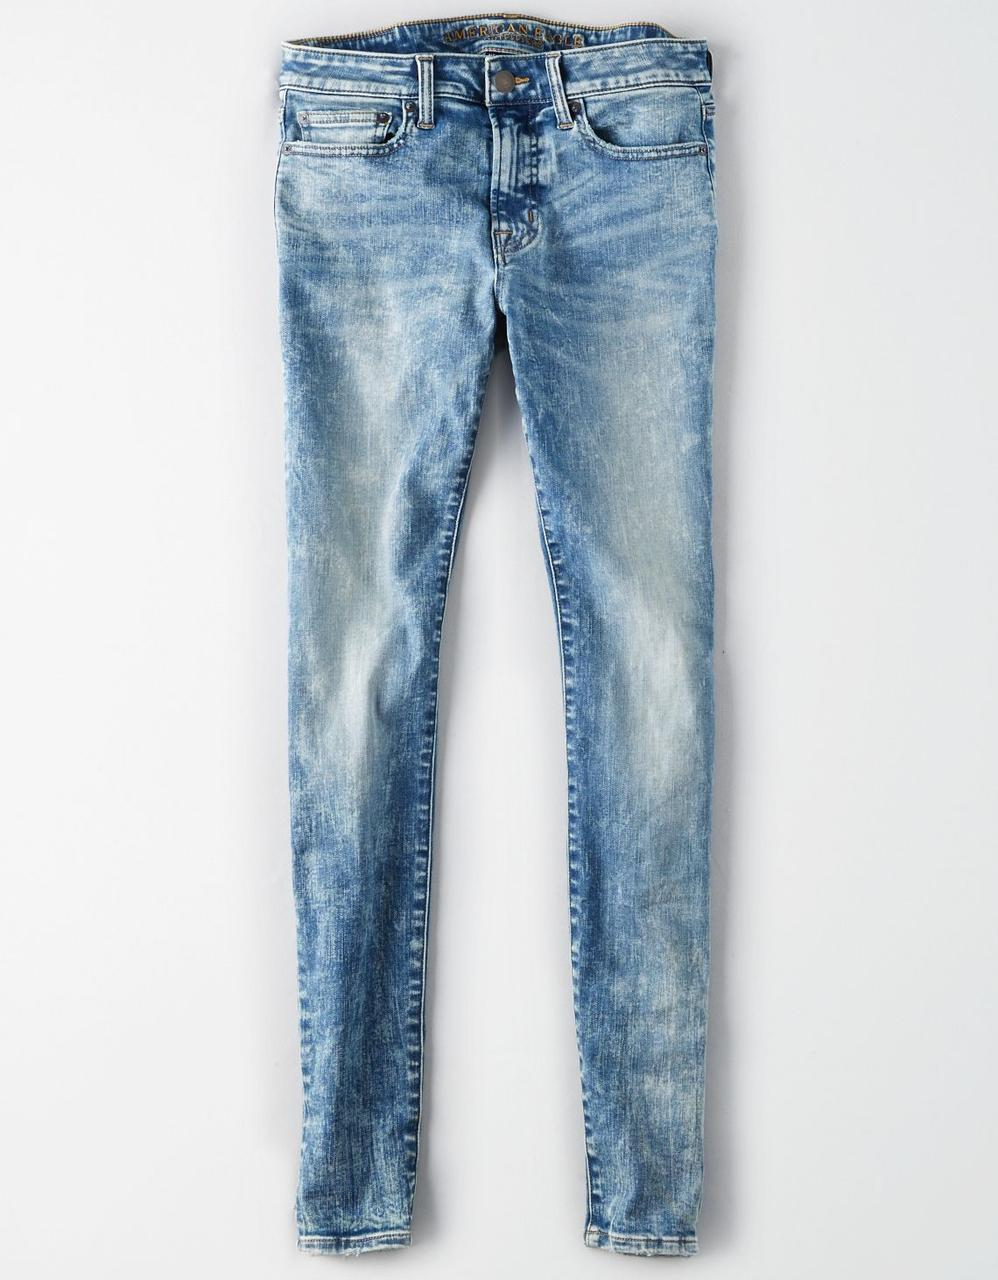 American Eagle Jeans, AE ULTRA SKINNY JEANS for Men at Aeo in